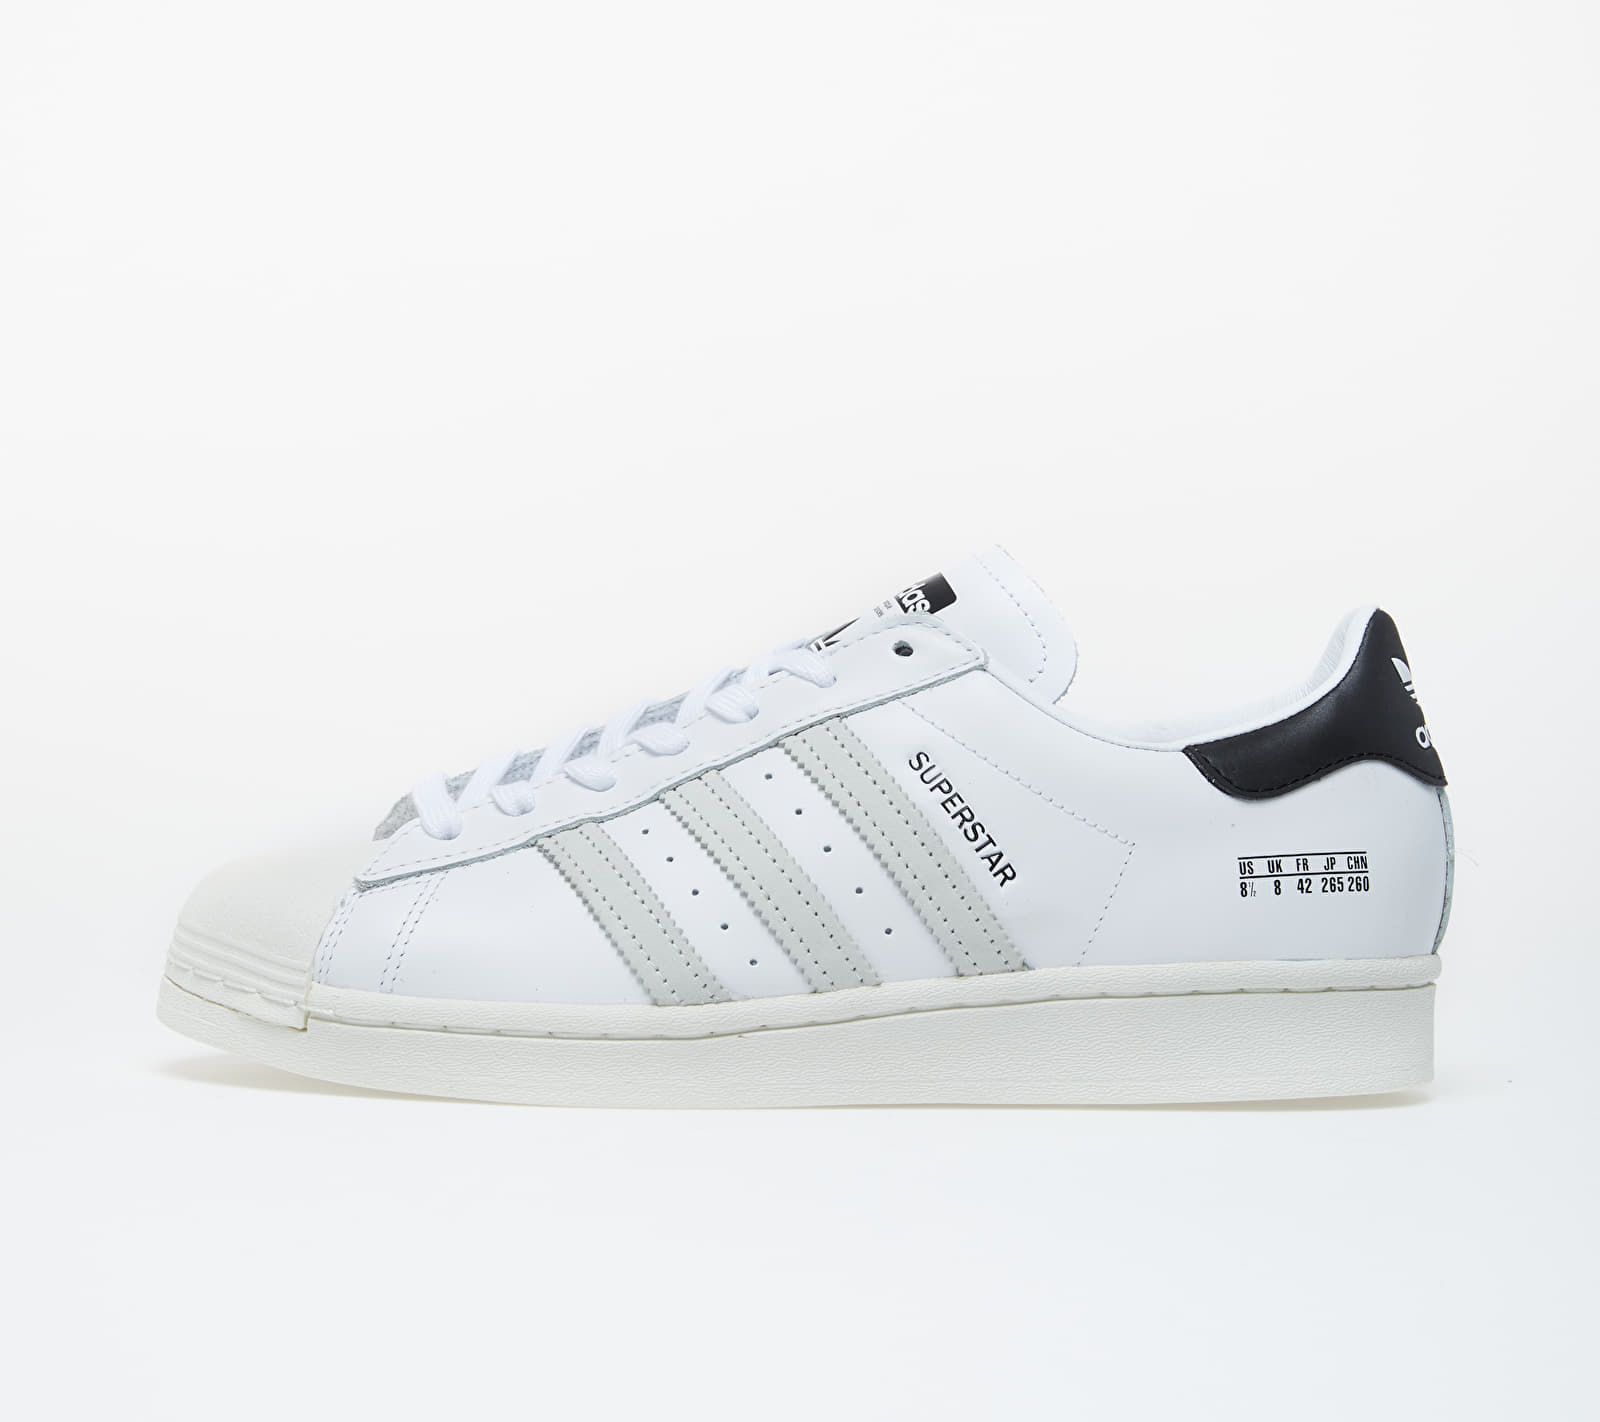 adidas Superstar Ftw White/ Ftw White/ Core Black EUR 41 1/3